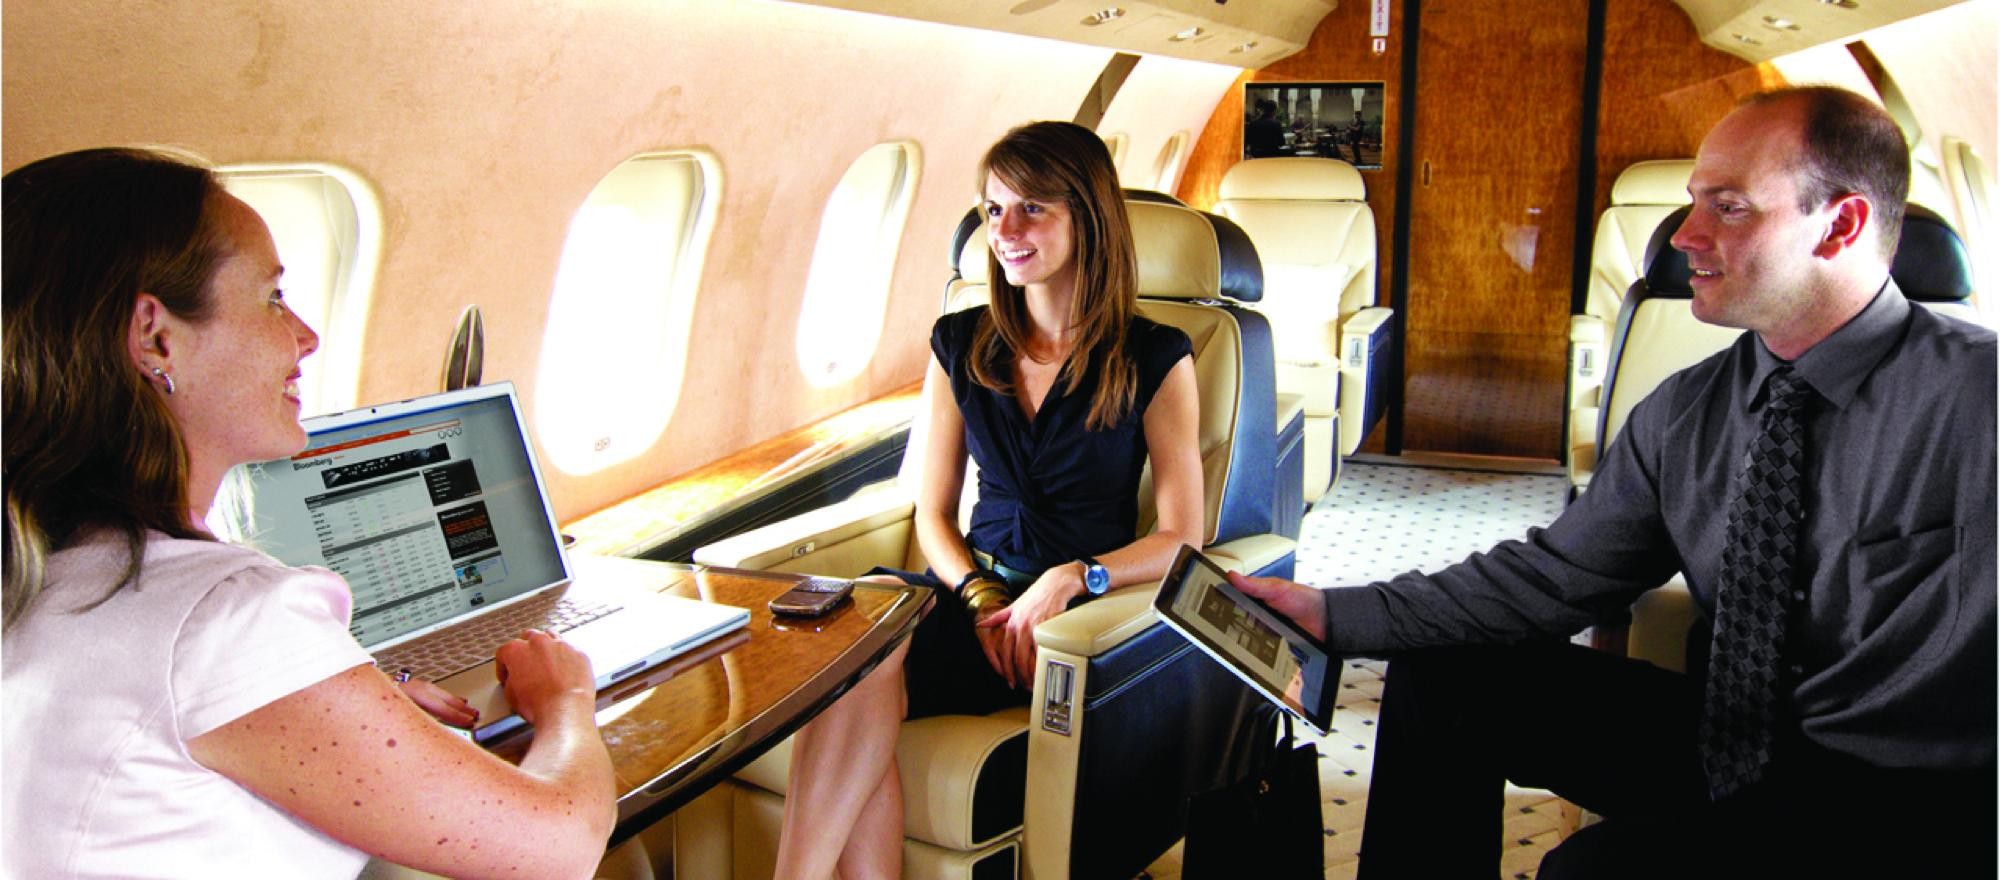 Business aircraft passengers are constantly seeking the latest in cabin electronics from smart phone charging stations to in-flight connectivity. (Photo: Innotech Aviation)